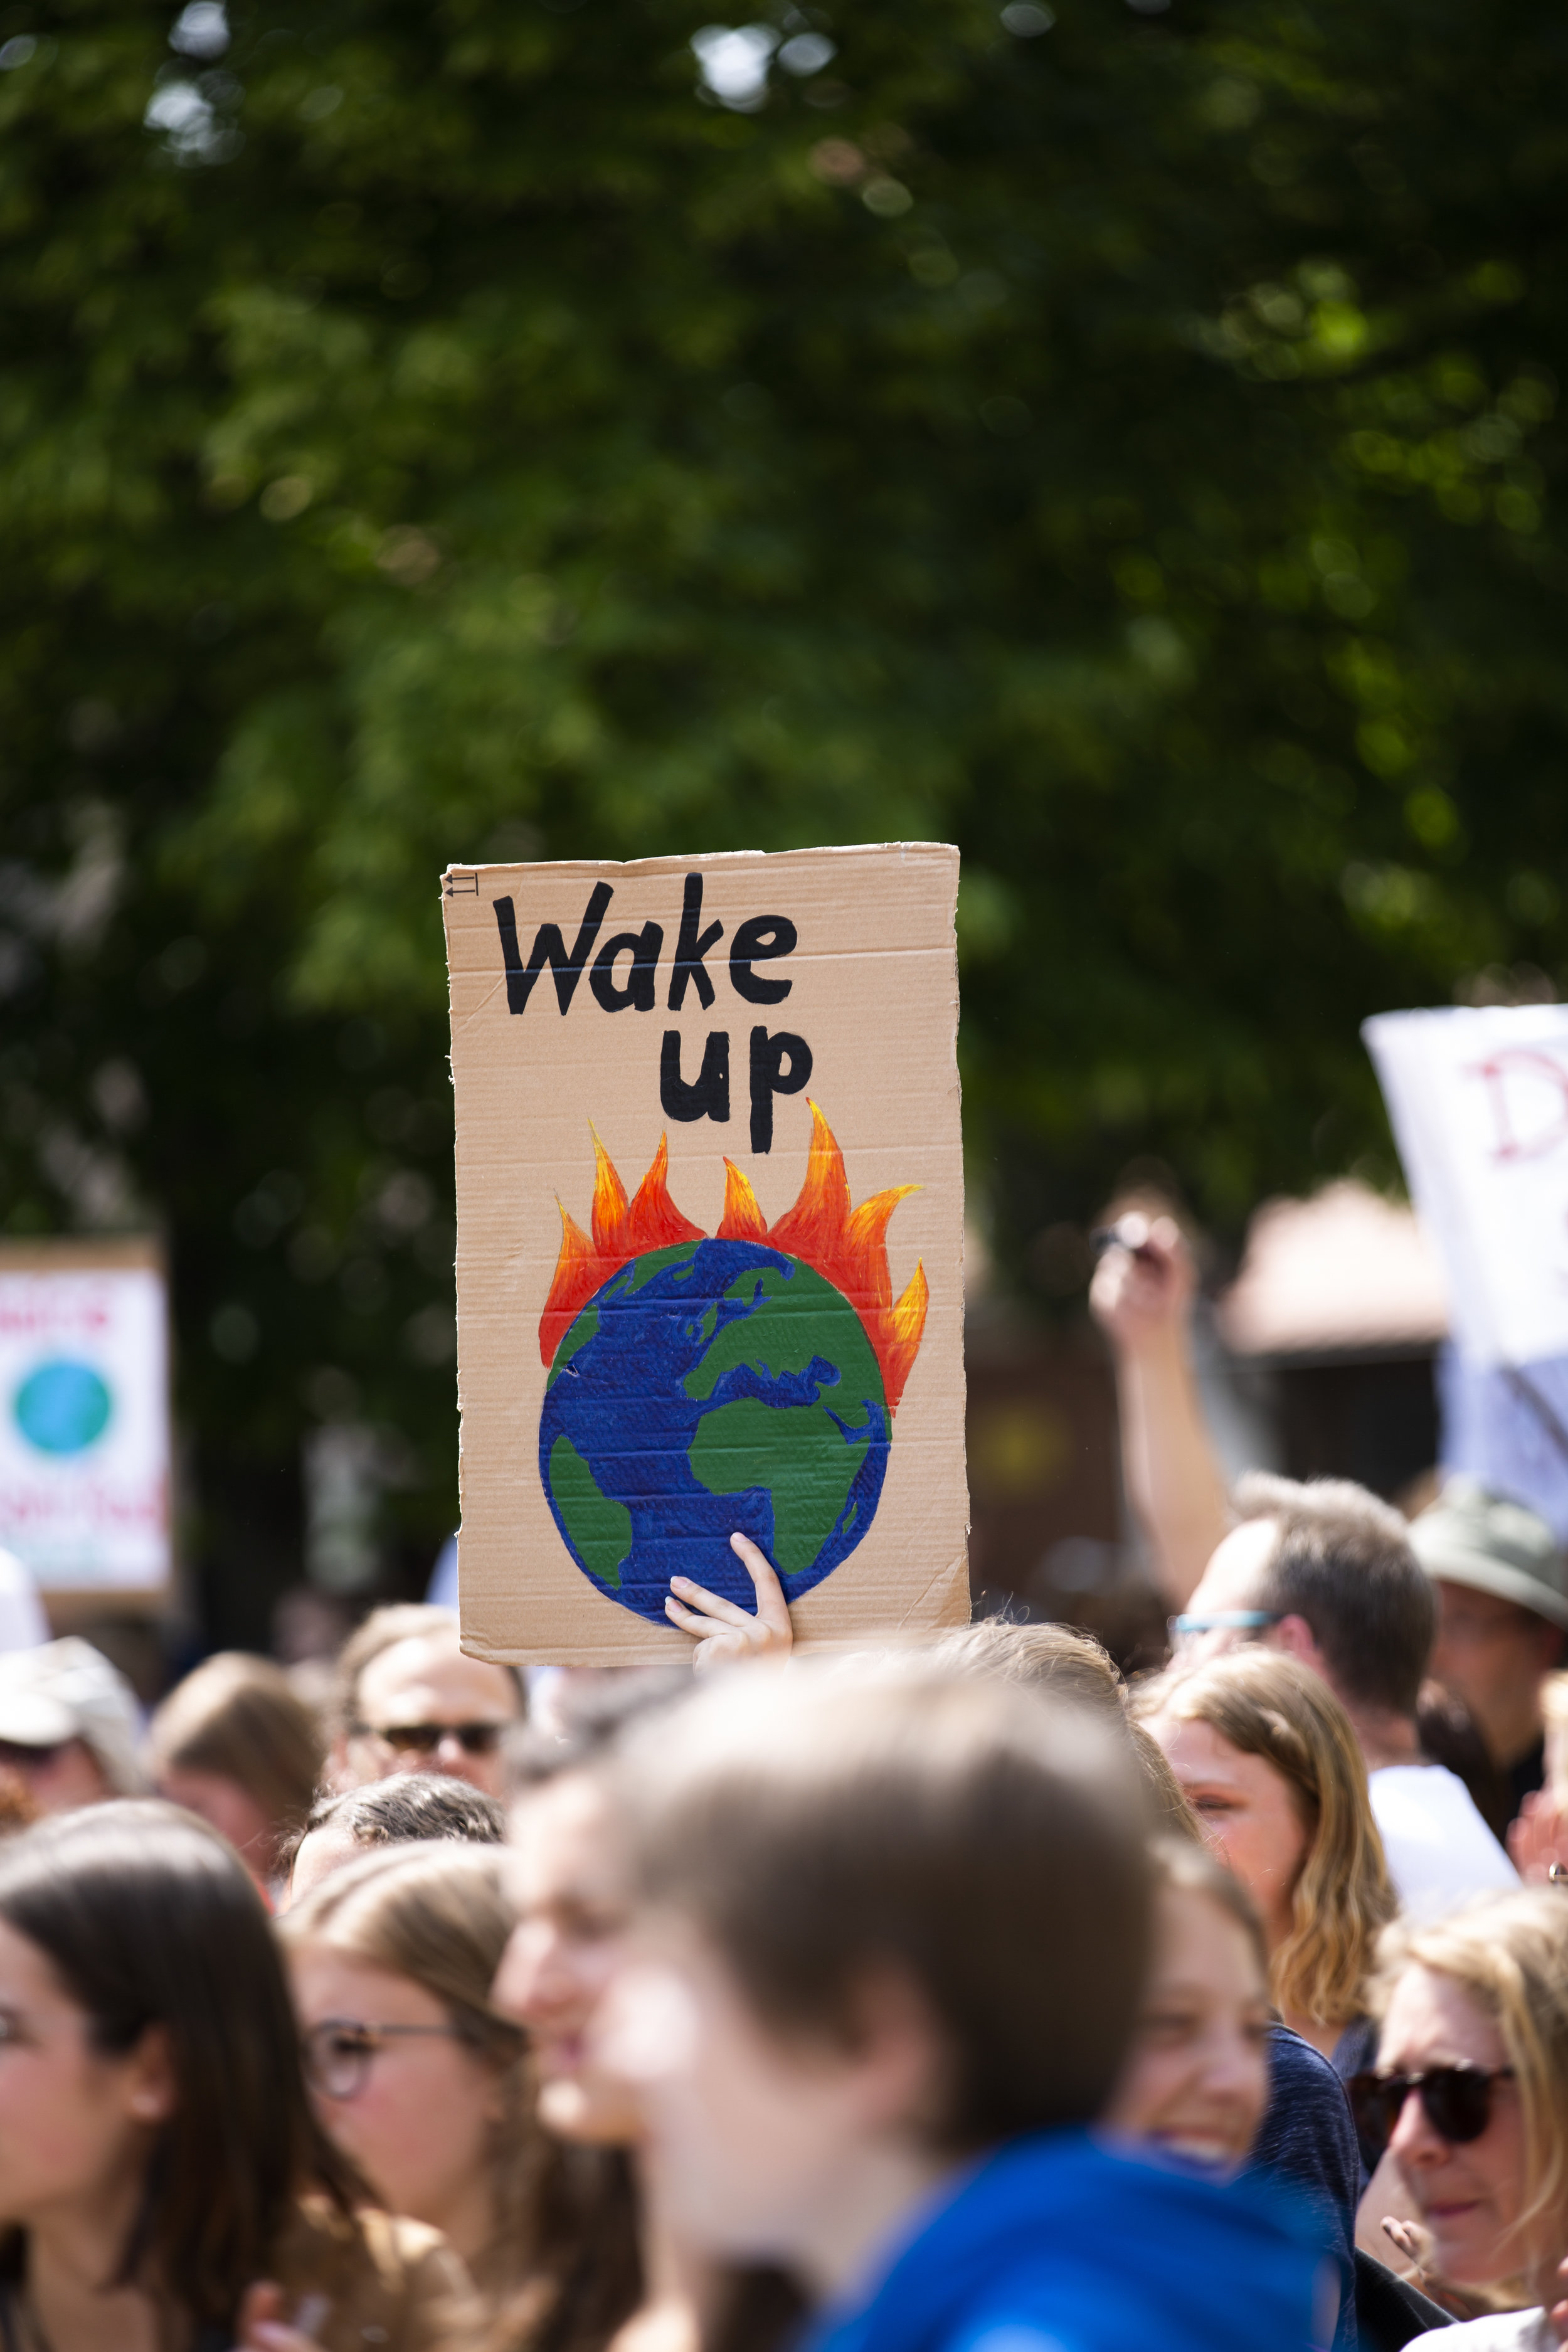 Greenhouse Pr have declared a climate emergency -